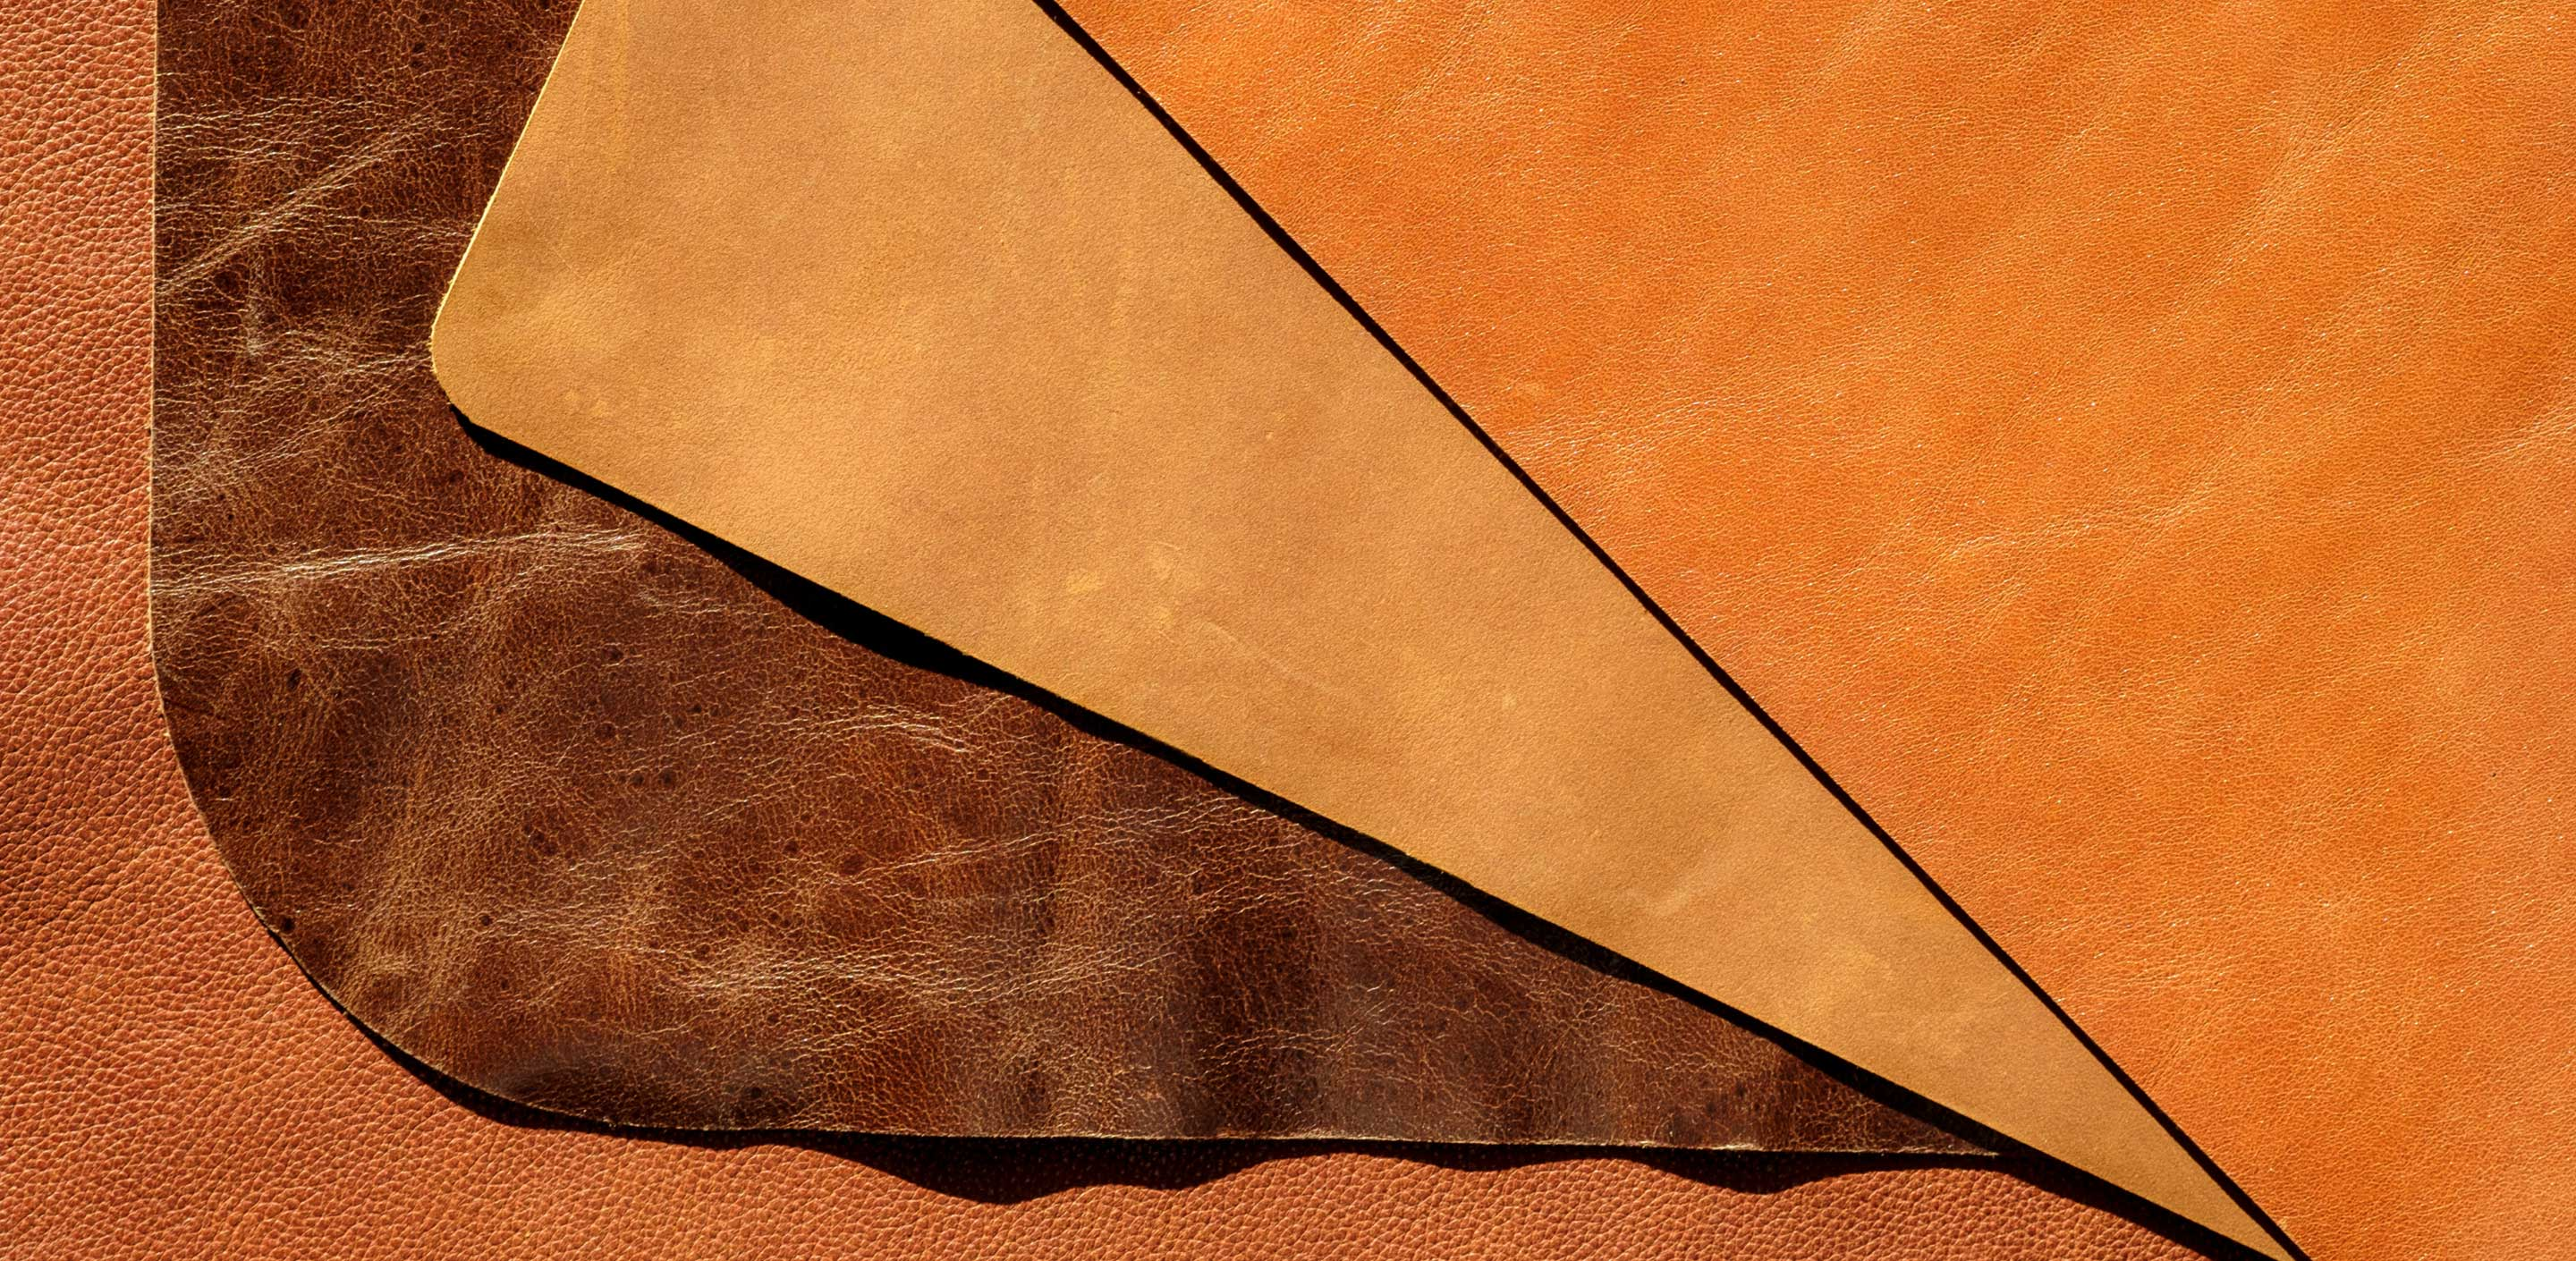 How to Identify Types of Leather